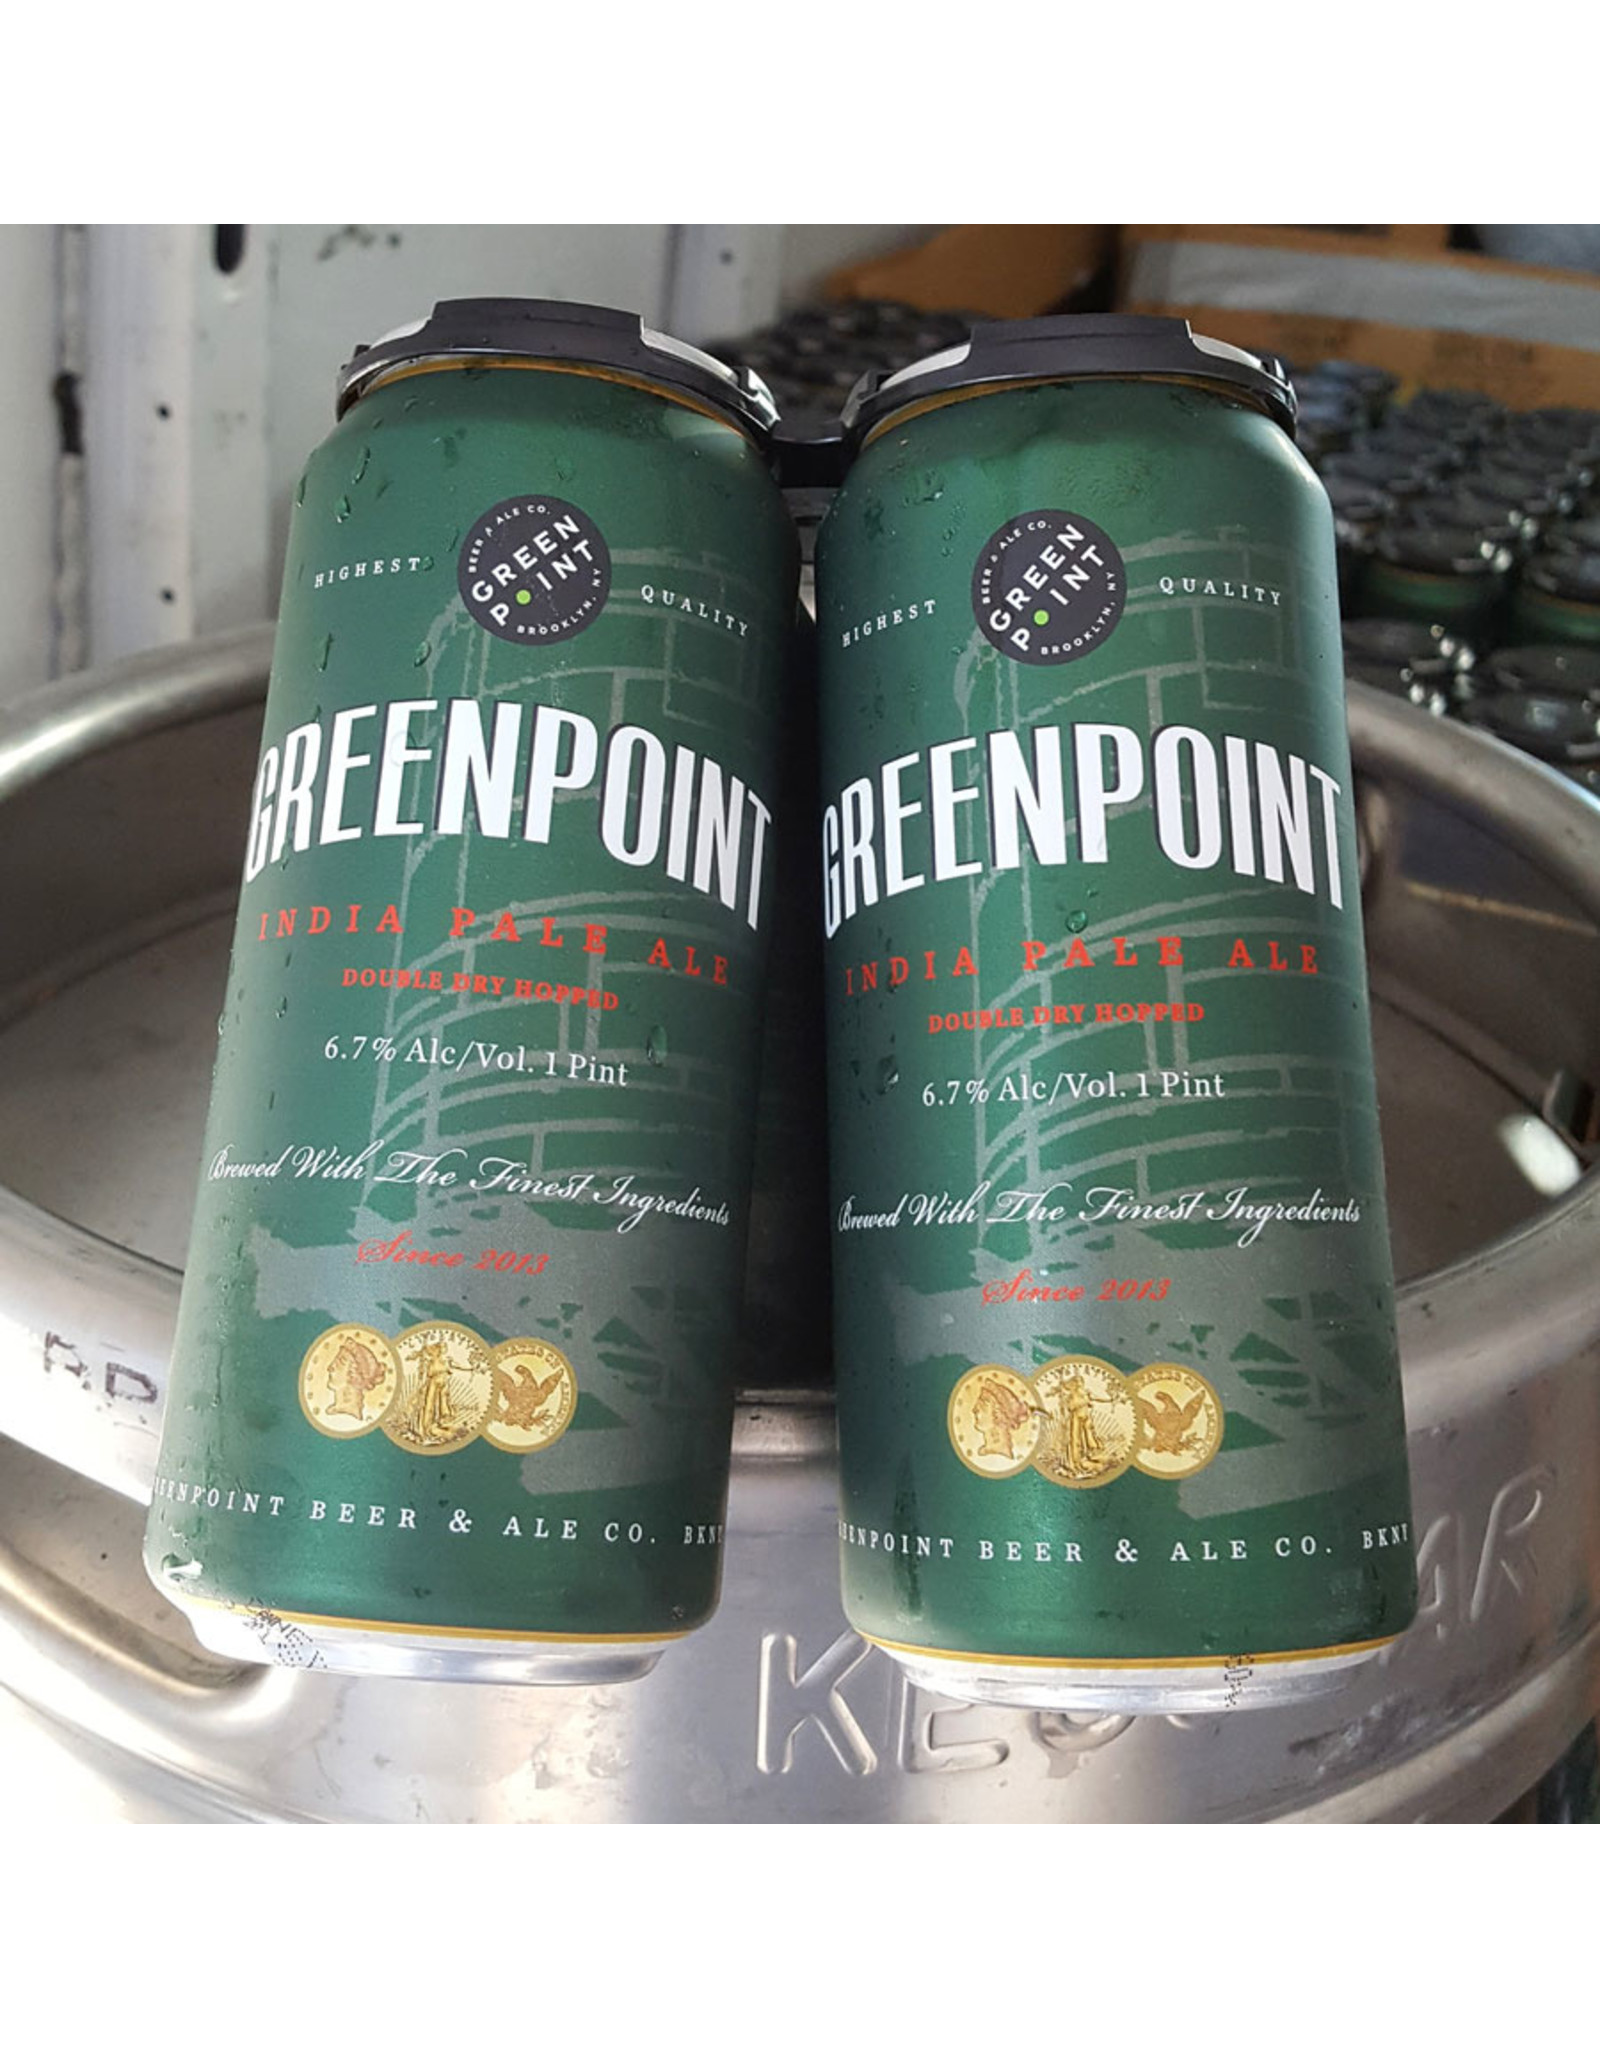 Greenpoint IPA 4pk 16oz Cans